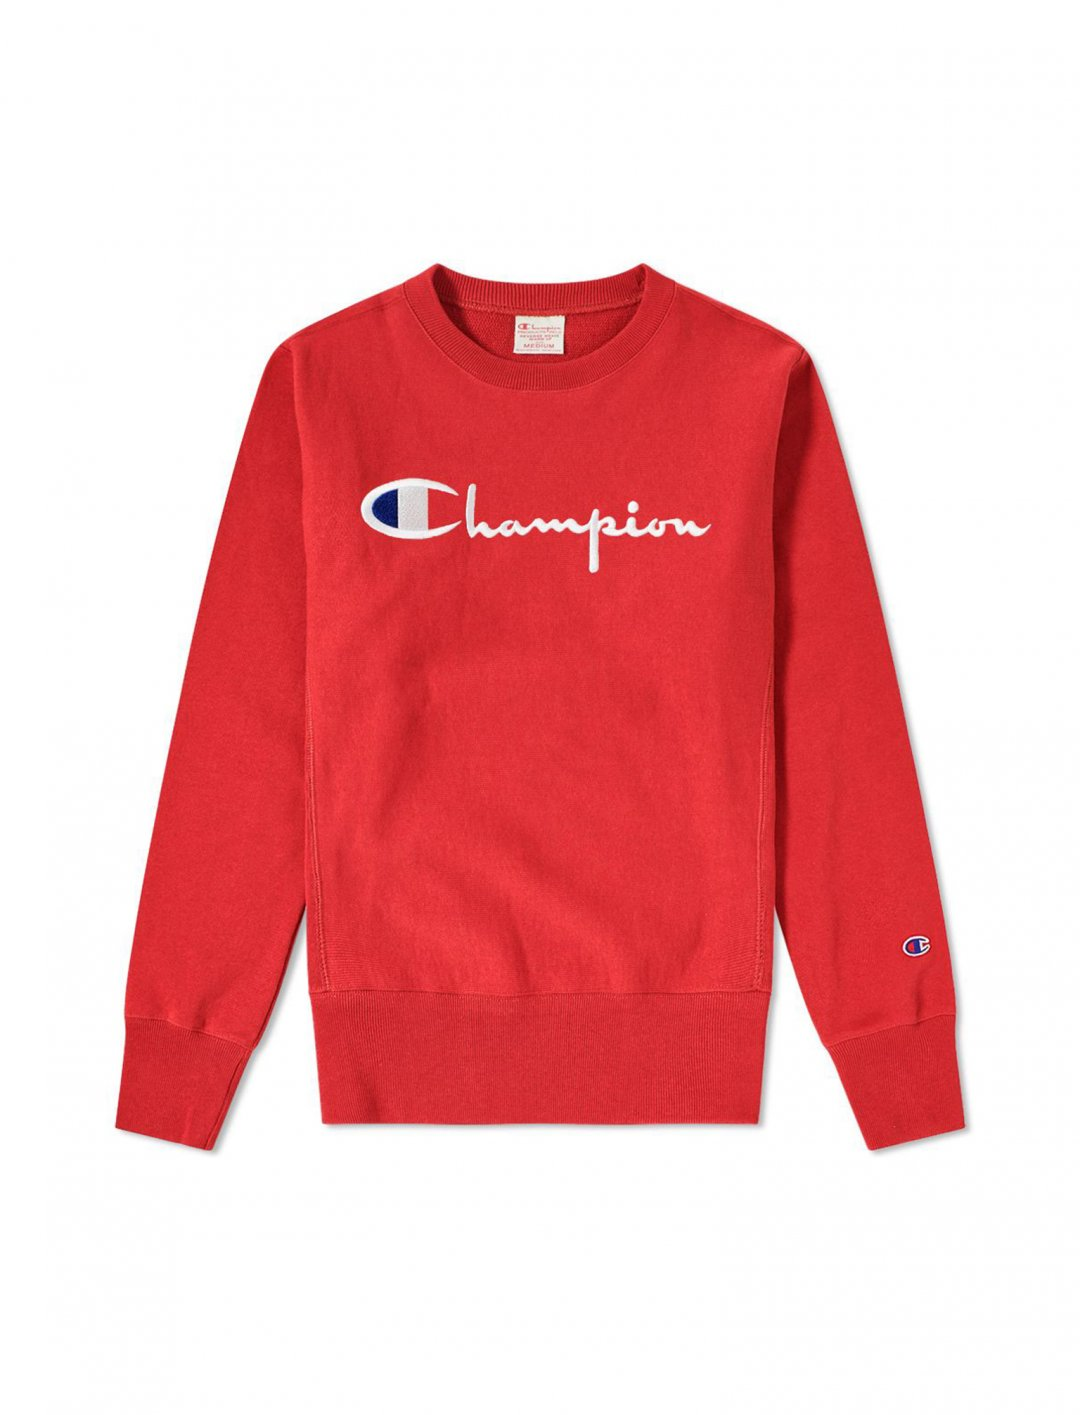 Sweatshirt, With Logo, In Red from Champion